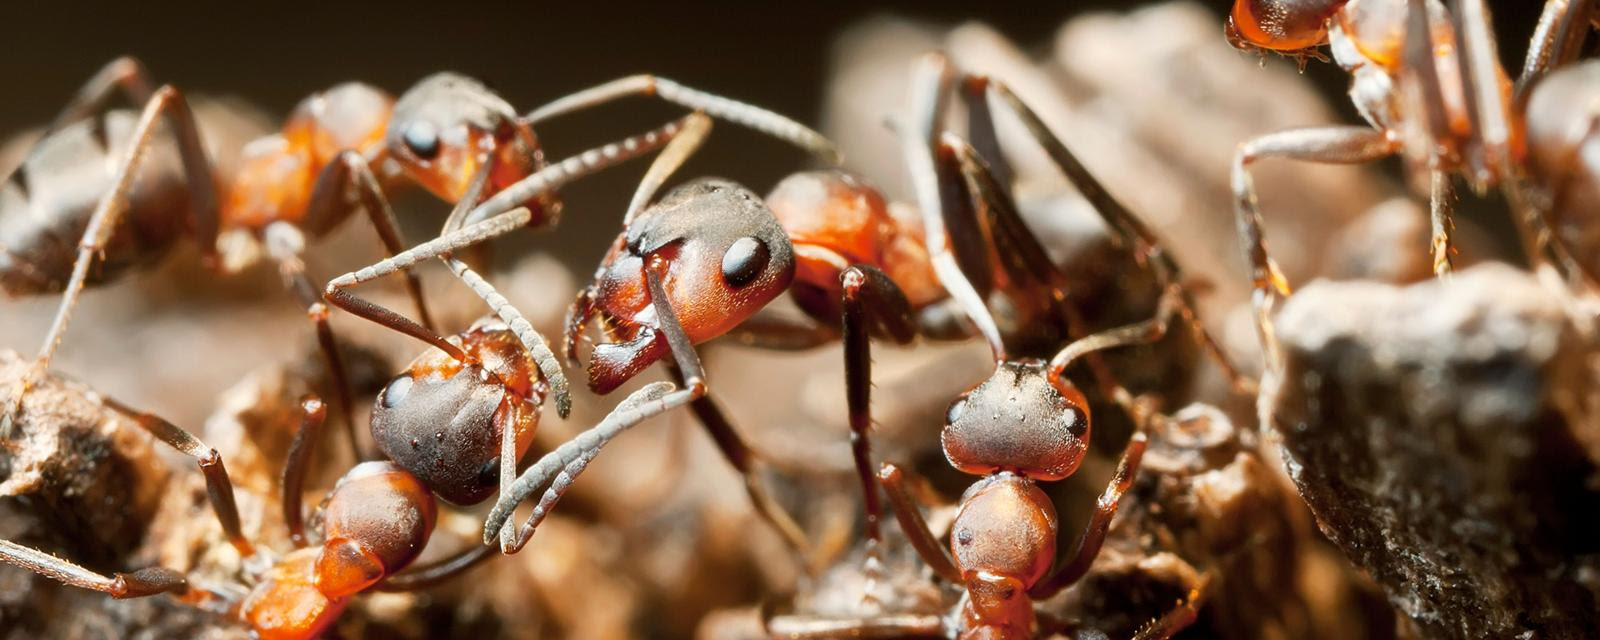 Blood-red ants (Formica sanguinea) (Credit: Juniors Bildarchiv GmbH/Alamy Stock Photo)